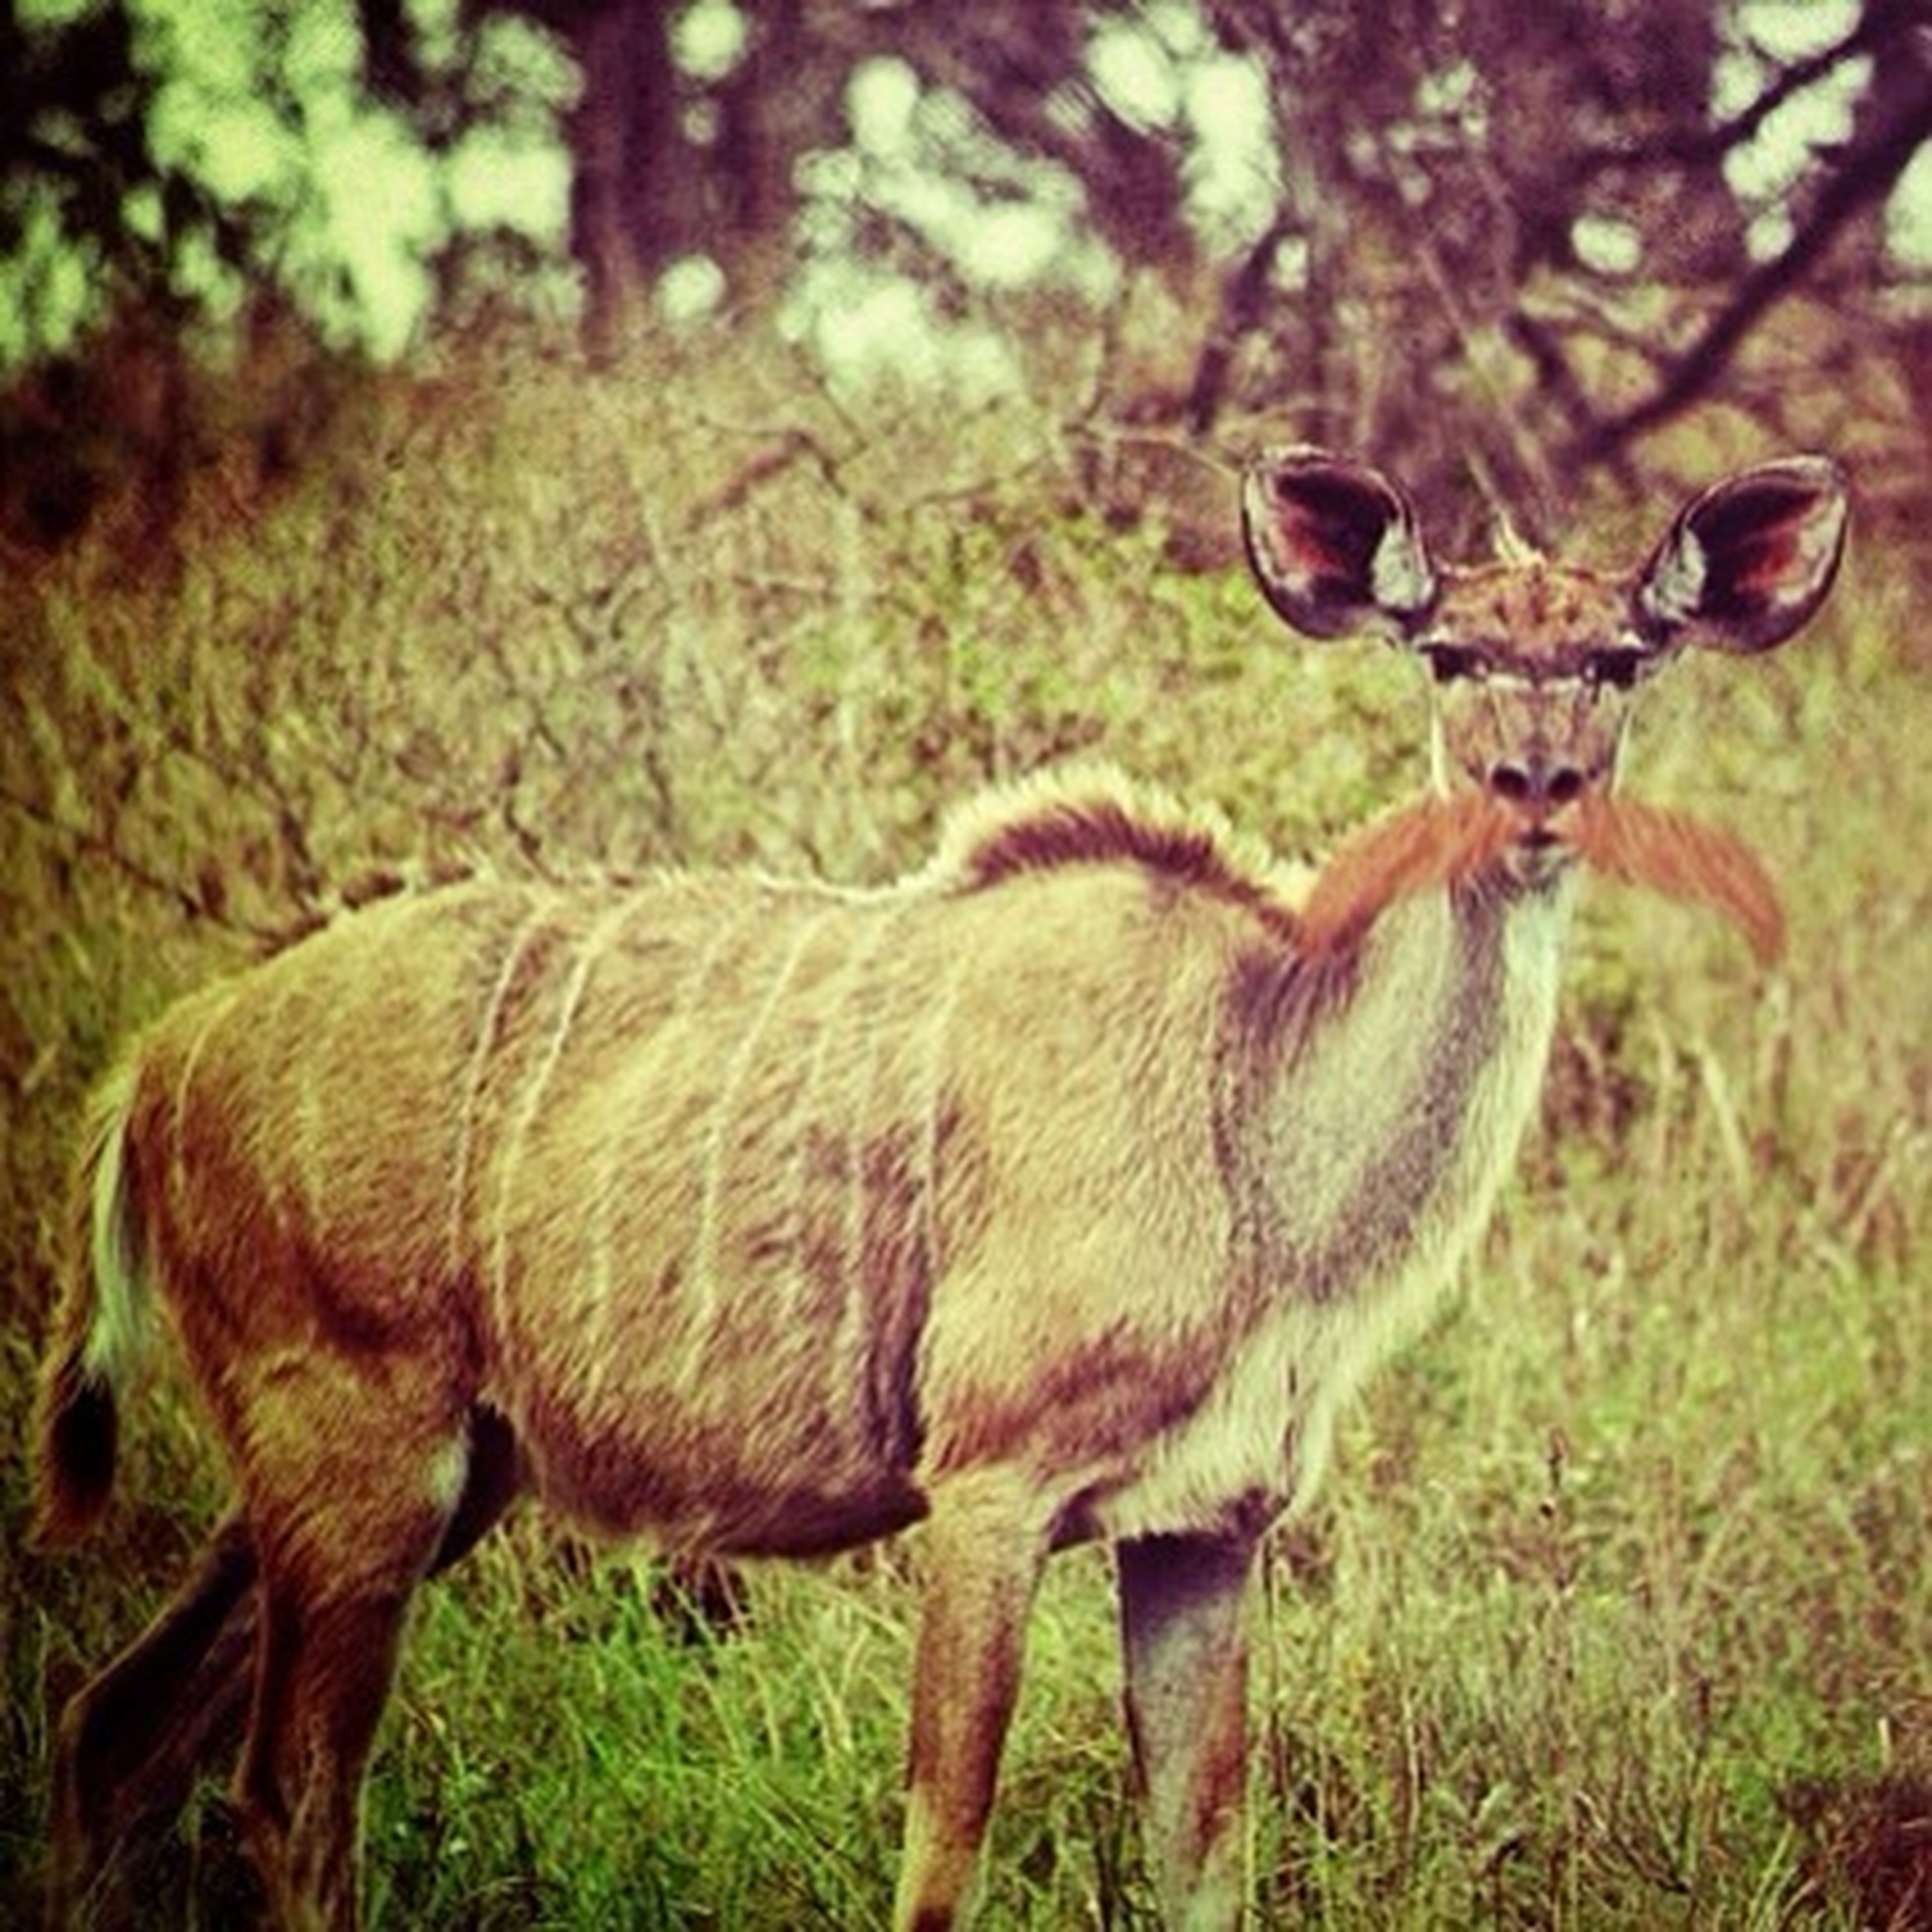 animal themes, animals in the wild, mammal, wildlife, one animal, field, deer, tree, forest, focus on foreground, nature, grass, standing, full length, day, grassy, outdoors, no people, tree trunk, brown